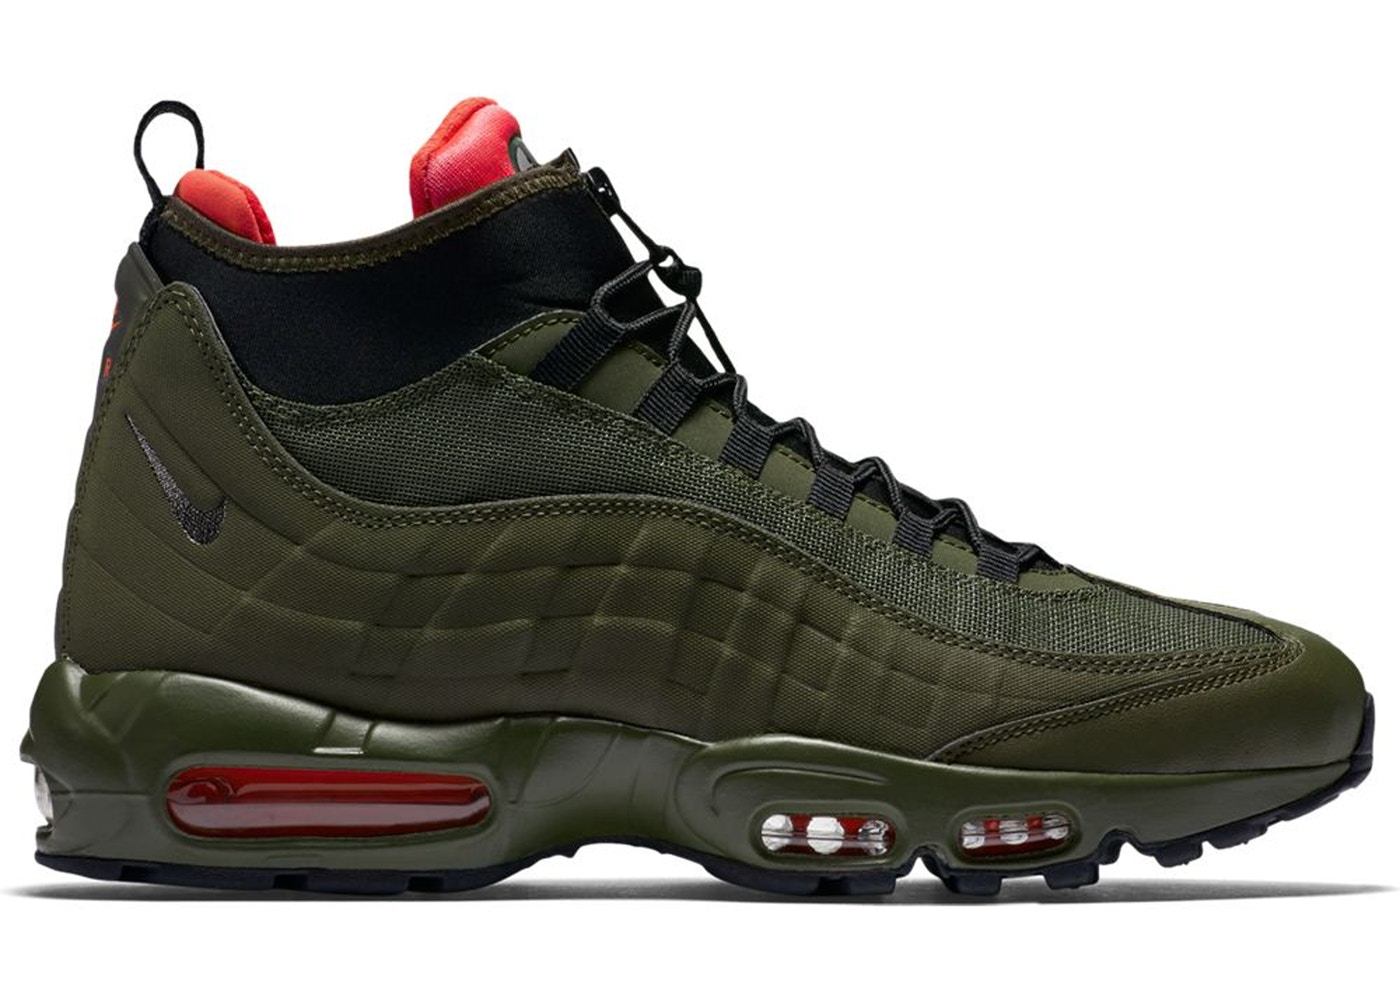 371777dcec Sell. or Ask. Size: 10.5. View All Bids. Air Max 95 Sneakerboot Dark Loden